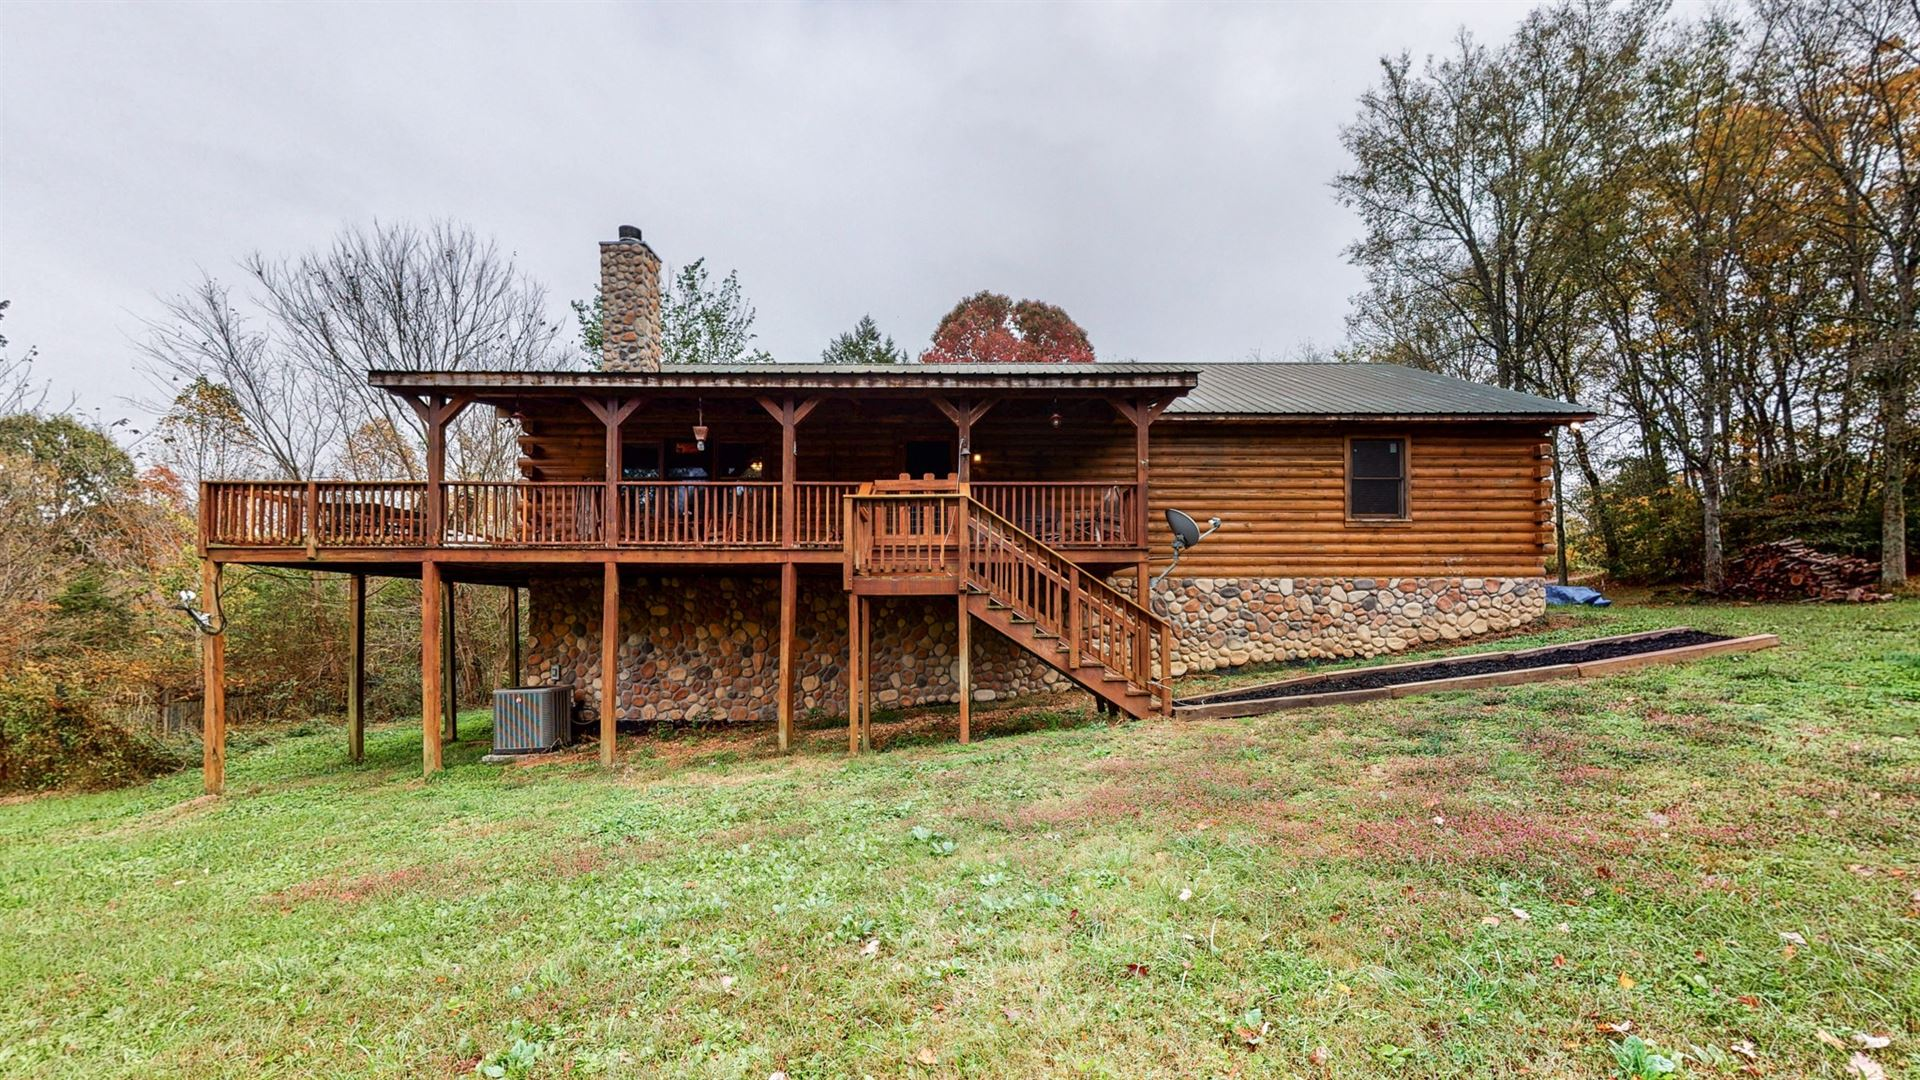 Photo of 3001 Crafton Rd, Spring Hill, TN 37174 (MLS # 2202246)